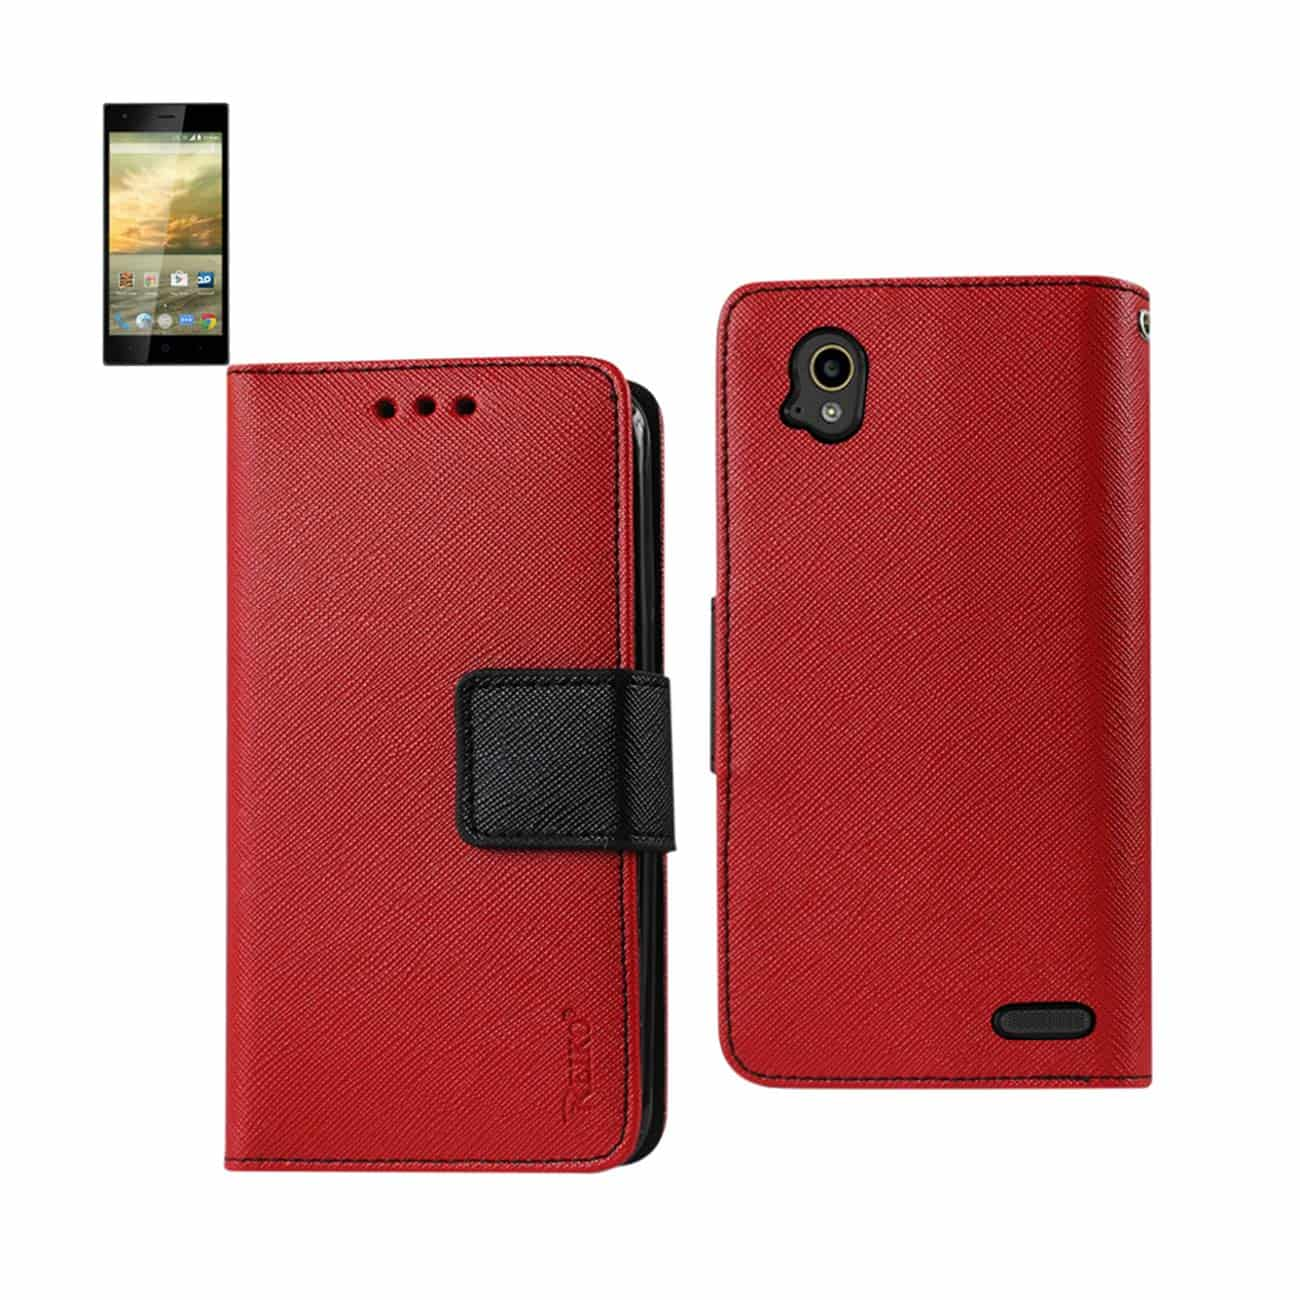 ZTE WARP ELITE 3-IN-1 WALLET CASE IN RED